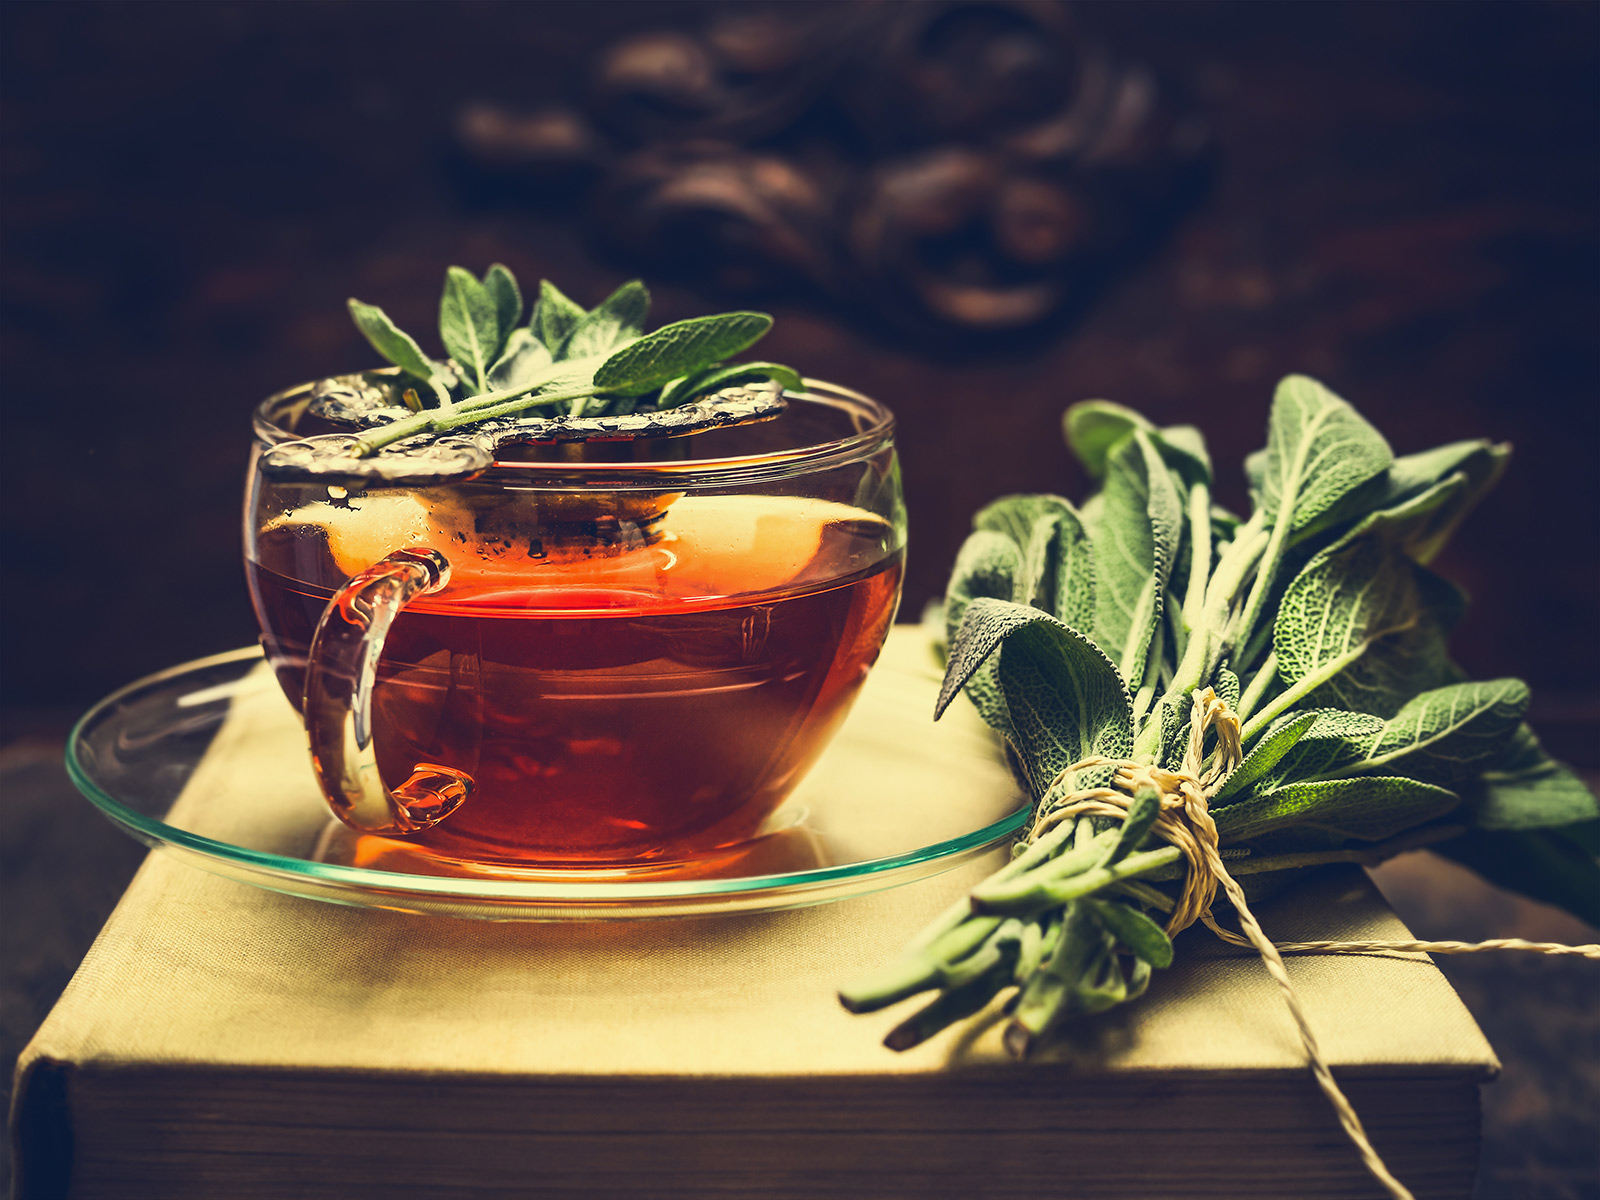 Tisane: differenza tra decotti, infusi e macerati